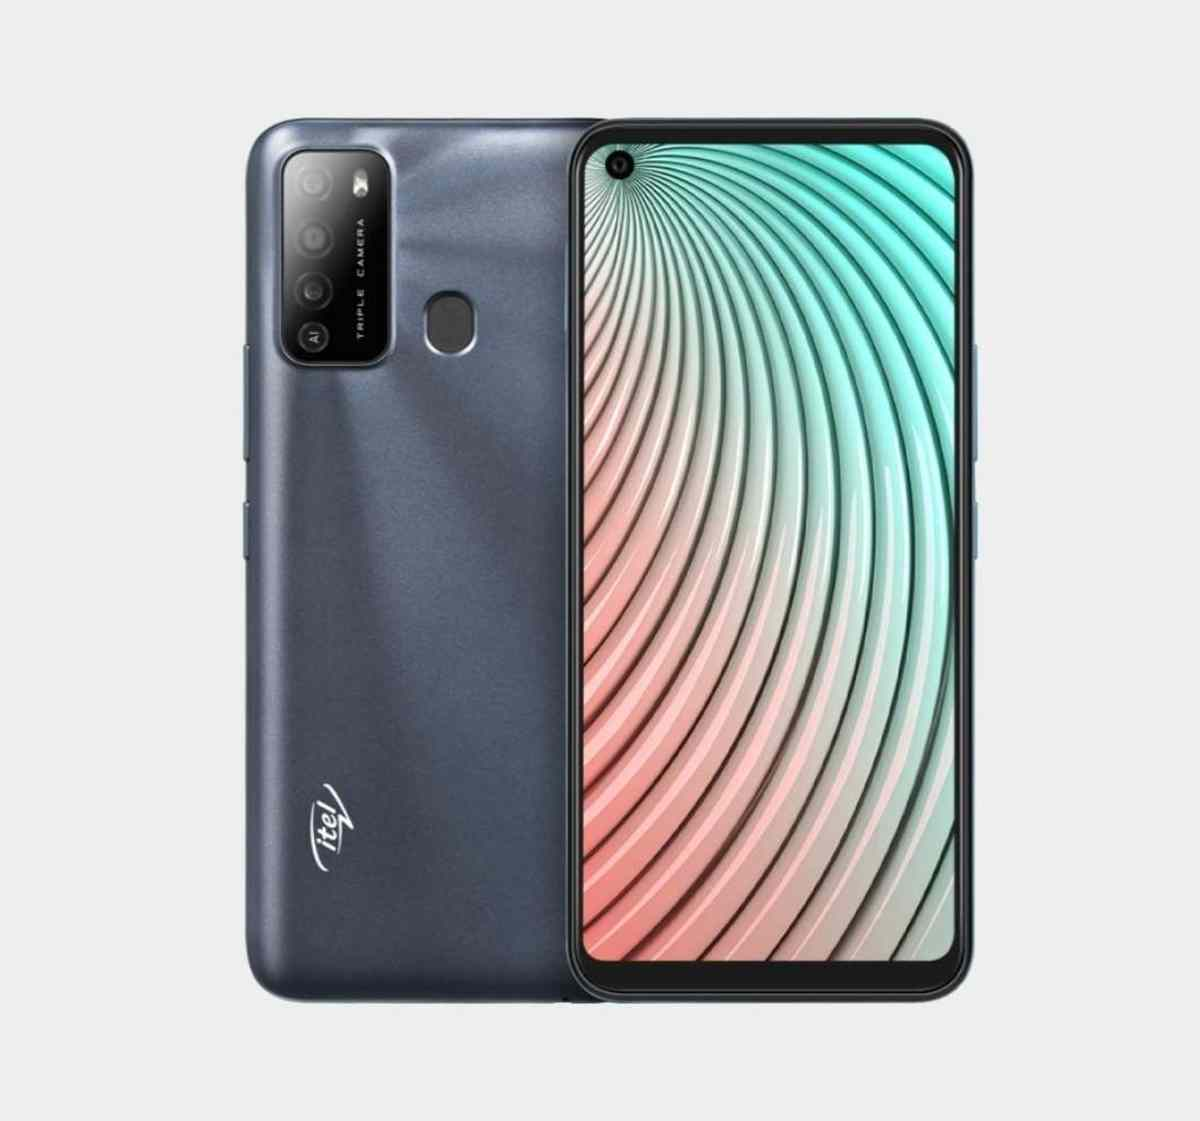 Itel Vision 2 Price in Nigeria & Specification